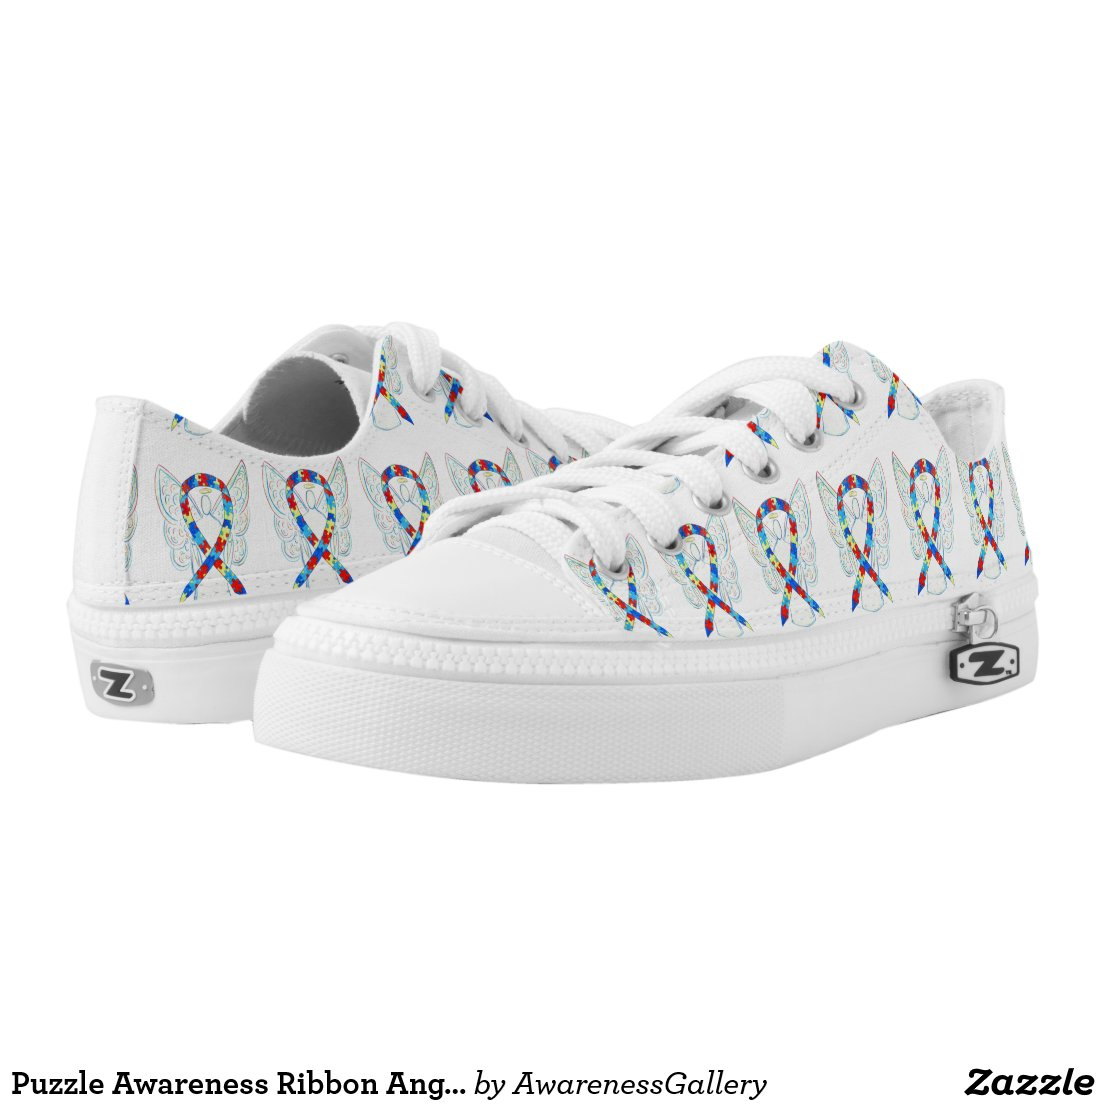 Puzzle Awareness Ribbon Angel Custom Sneakers